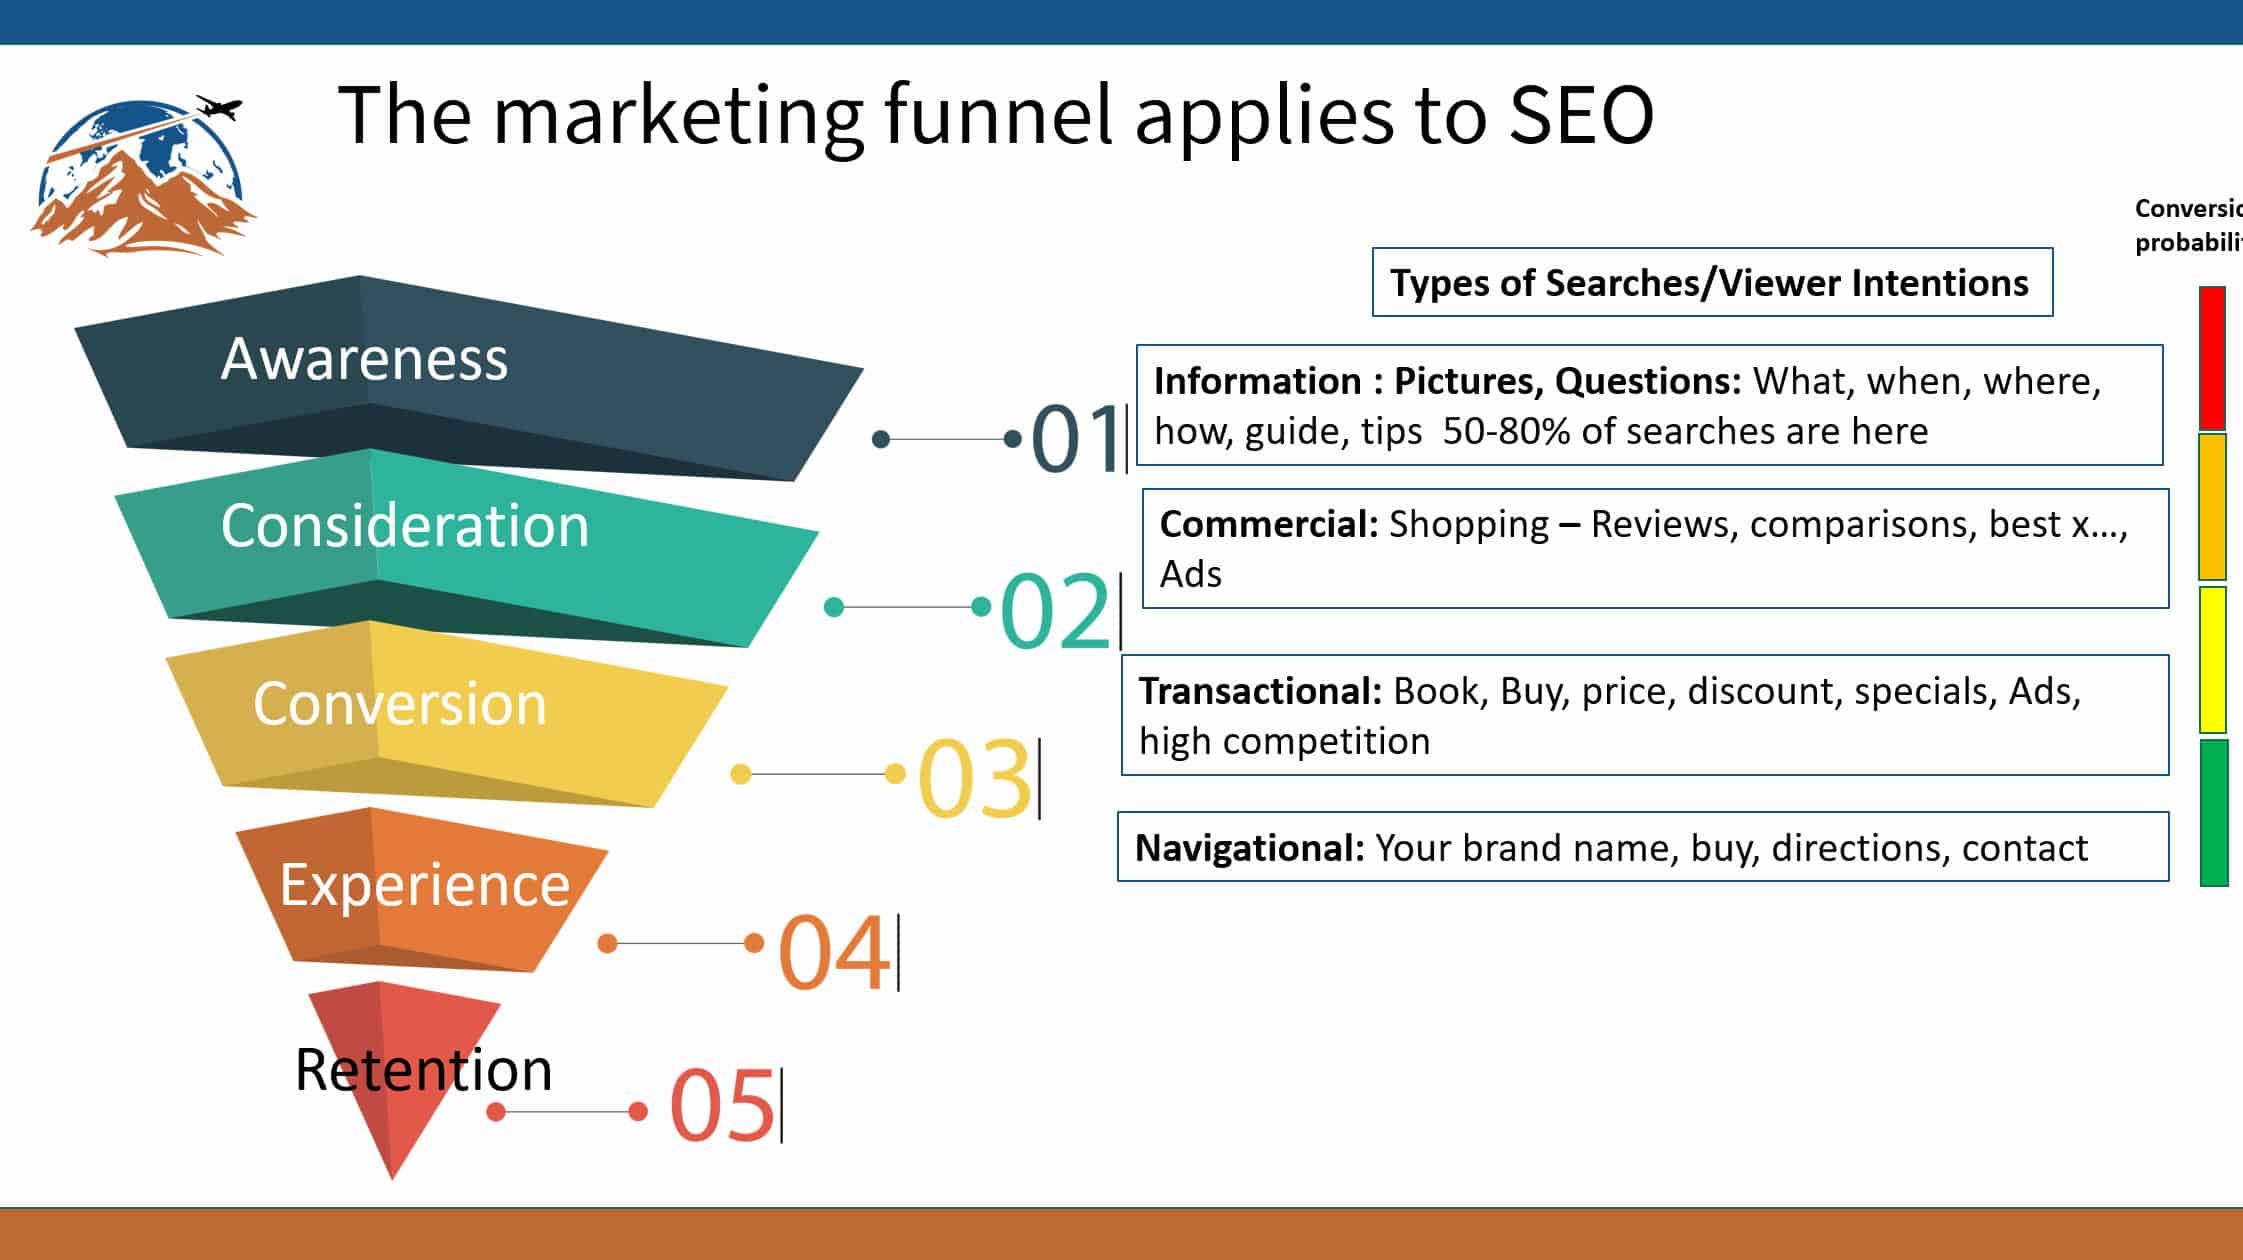 Tourism SEO for travel website picture of the marketing funnel